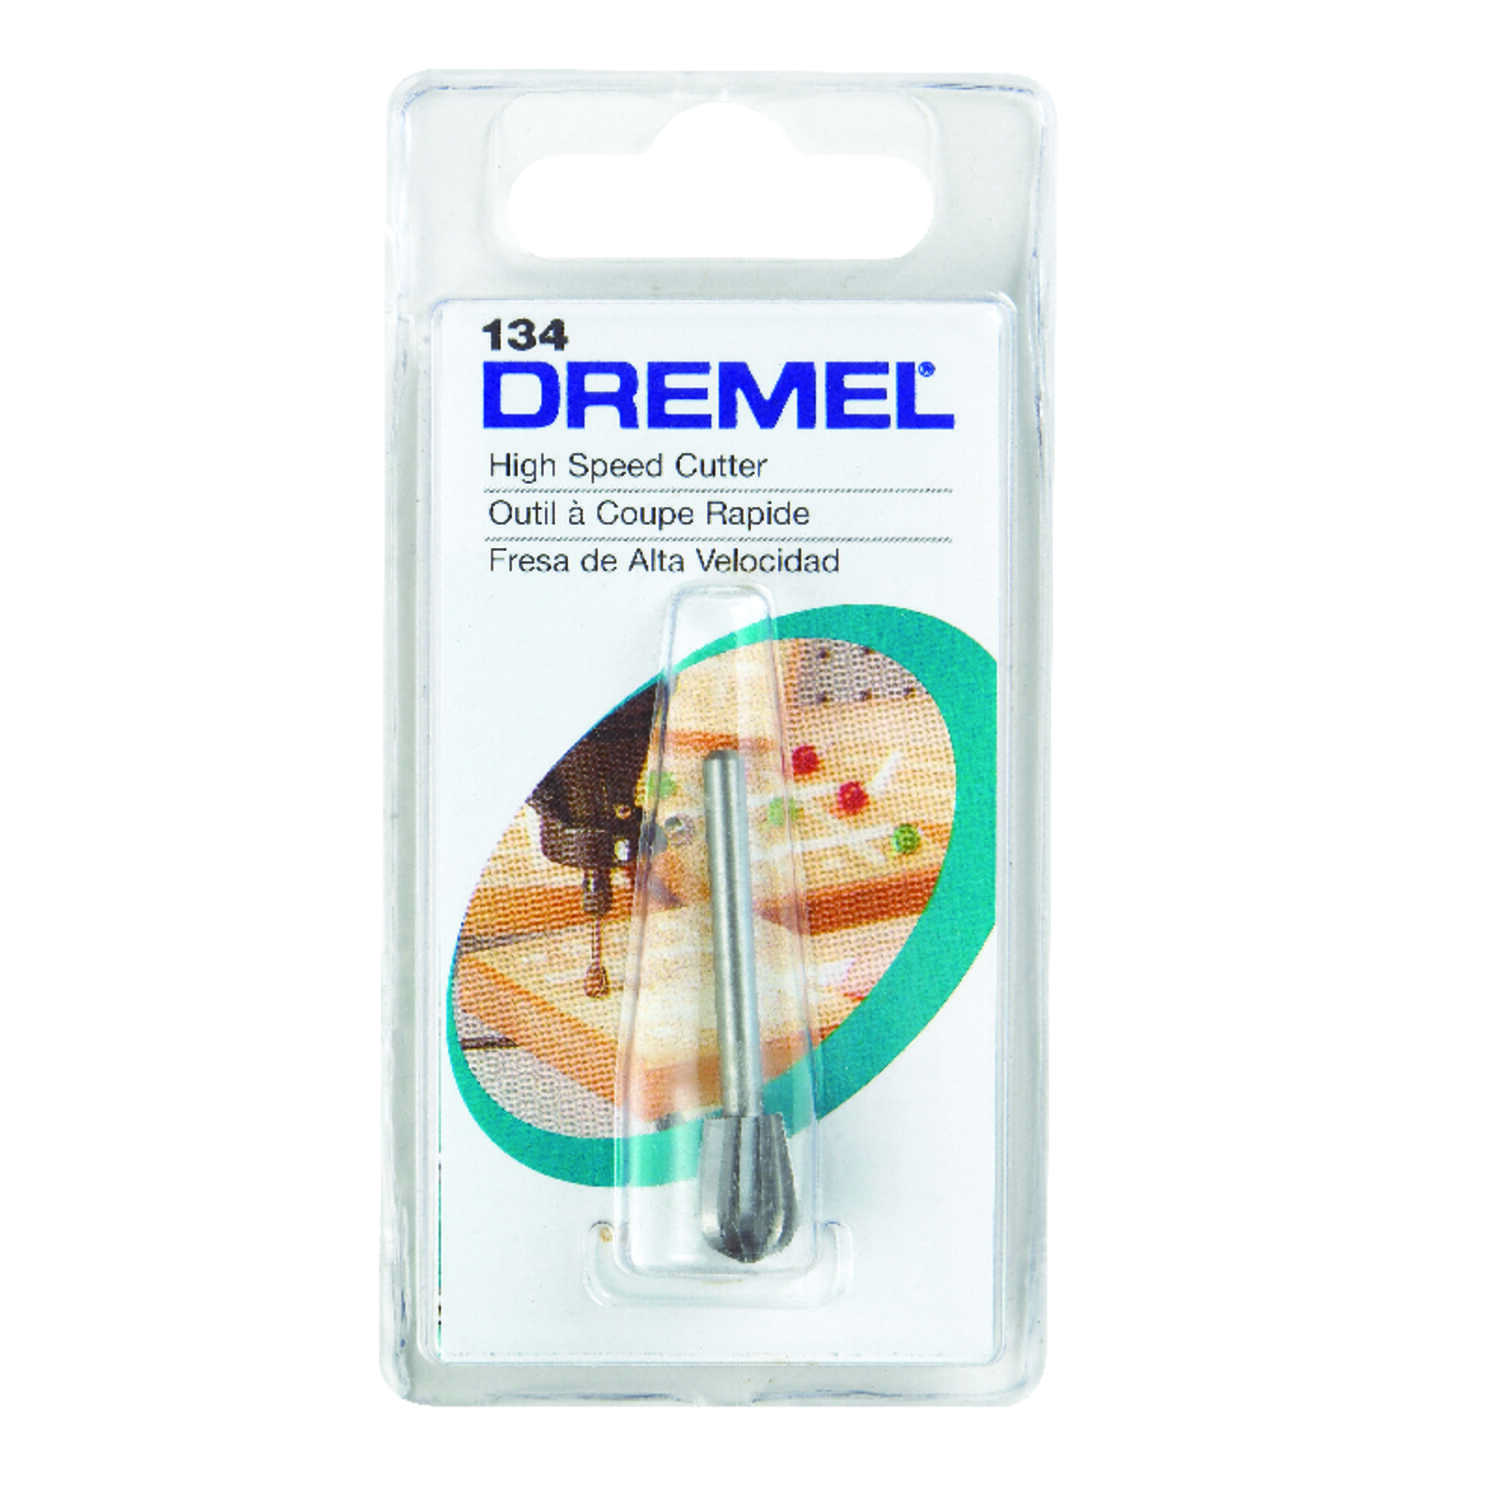 Dremel  5/16 in   x 1.5 in. L x 1/8 in. Dia. High Speed Steel  High Speed Cutter  1 pk